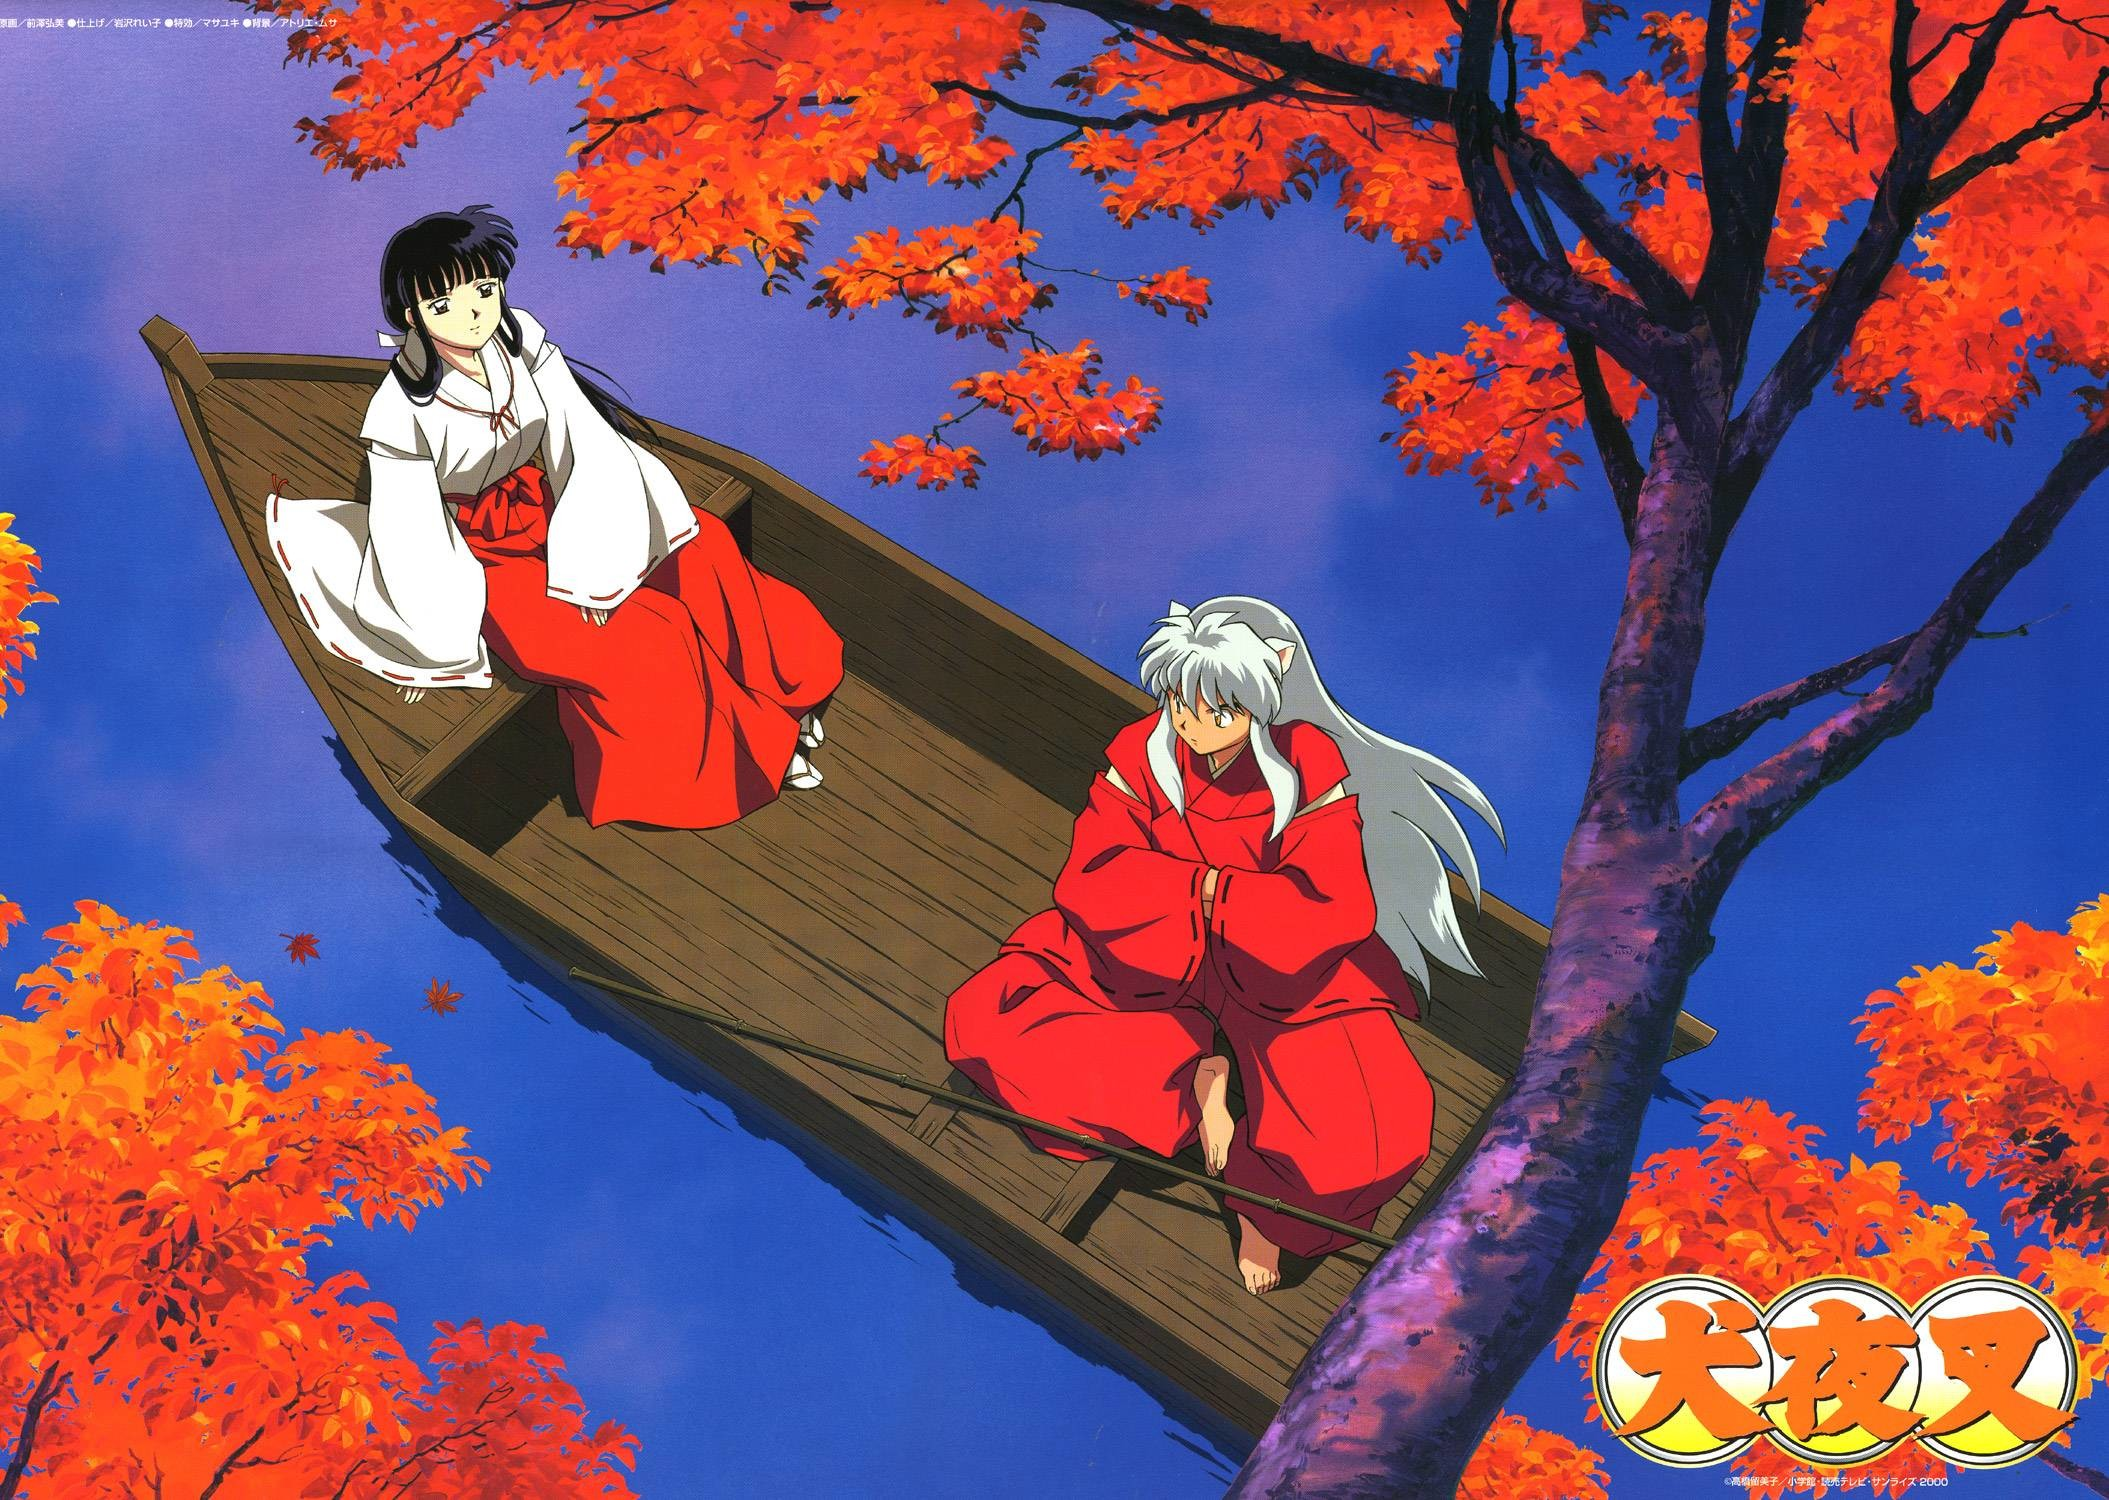 2109x1500 inuyasha wallpaper full hd windows wallpapers hd download free amazing cool  background images windows 10 2109×1500 Wallpaper HD